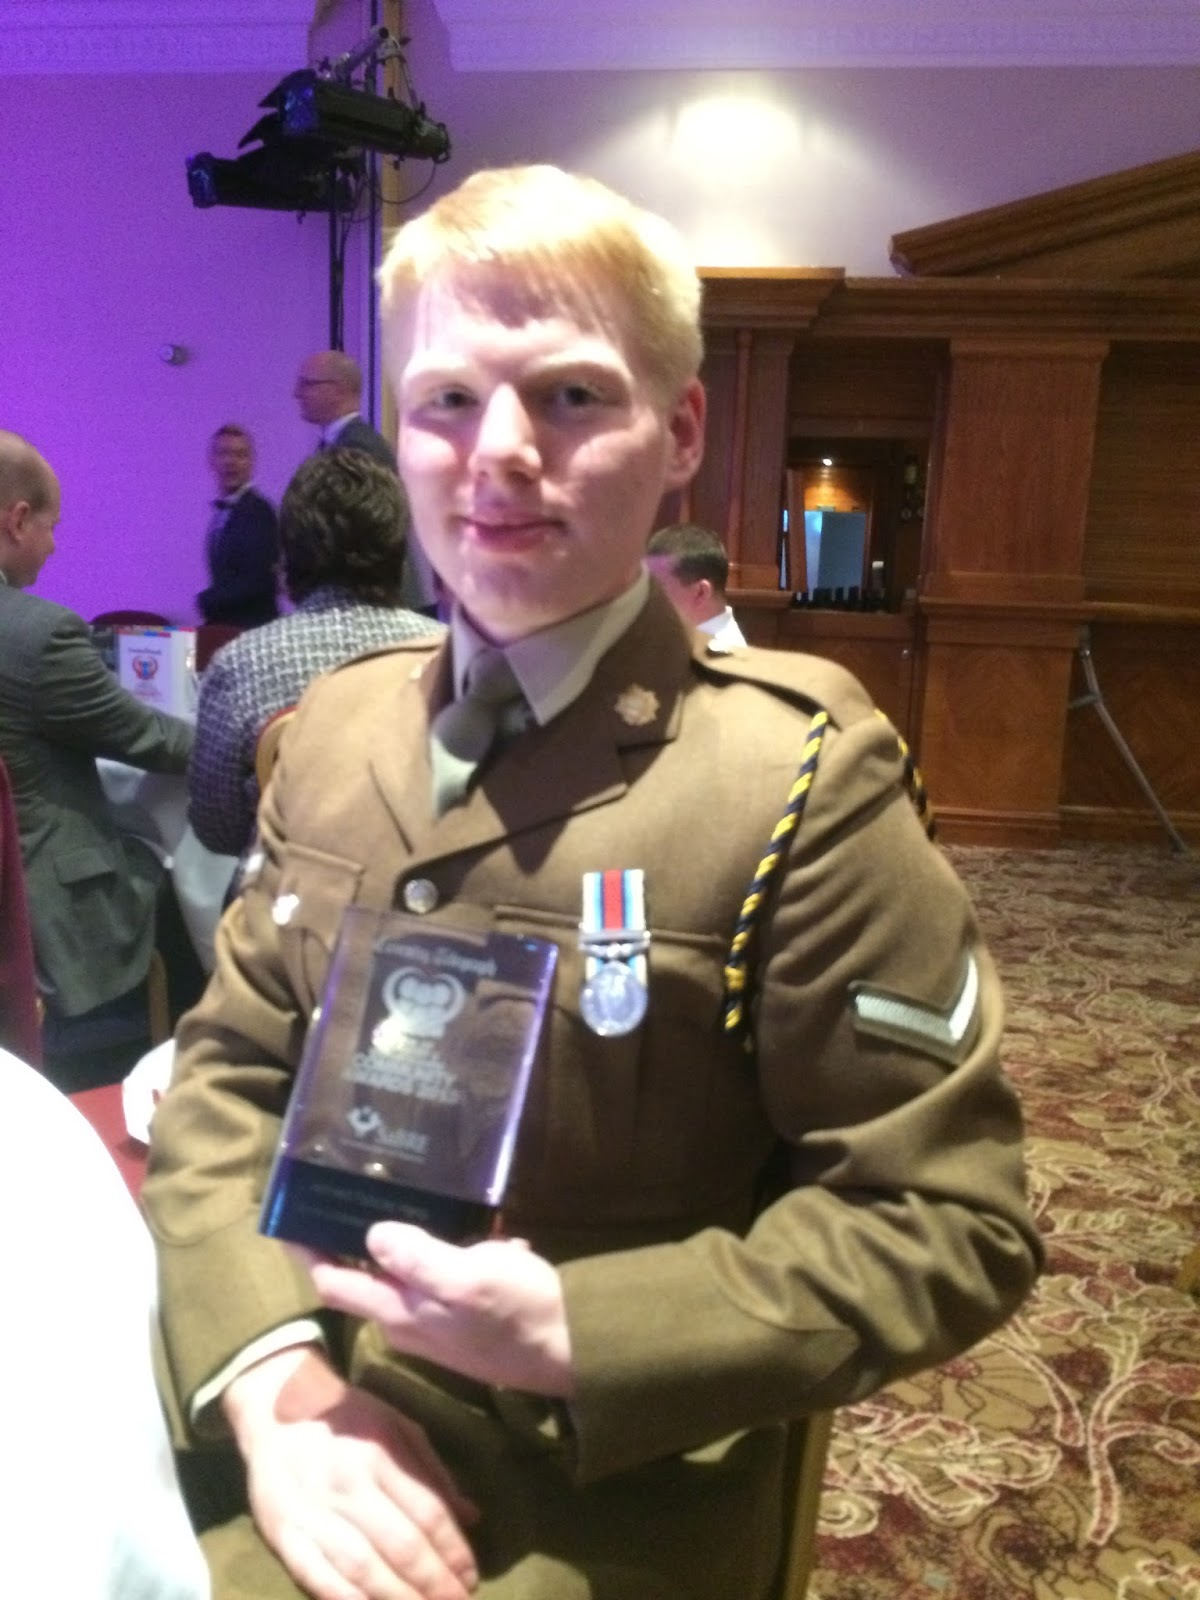 LCpl Hoskins of 159 Supply Regiment holding his award at the Pride of Coventry awards ceremony.